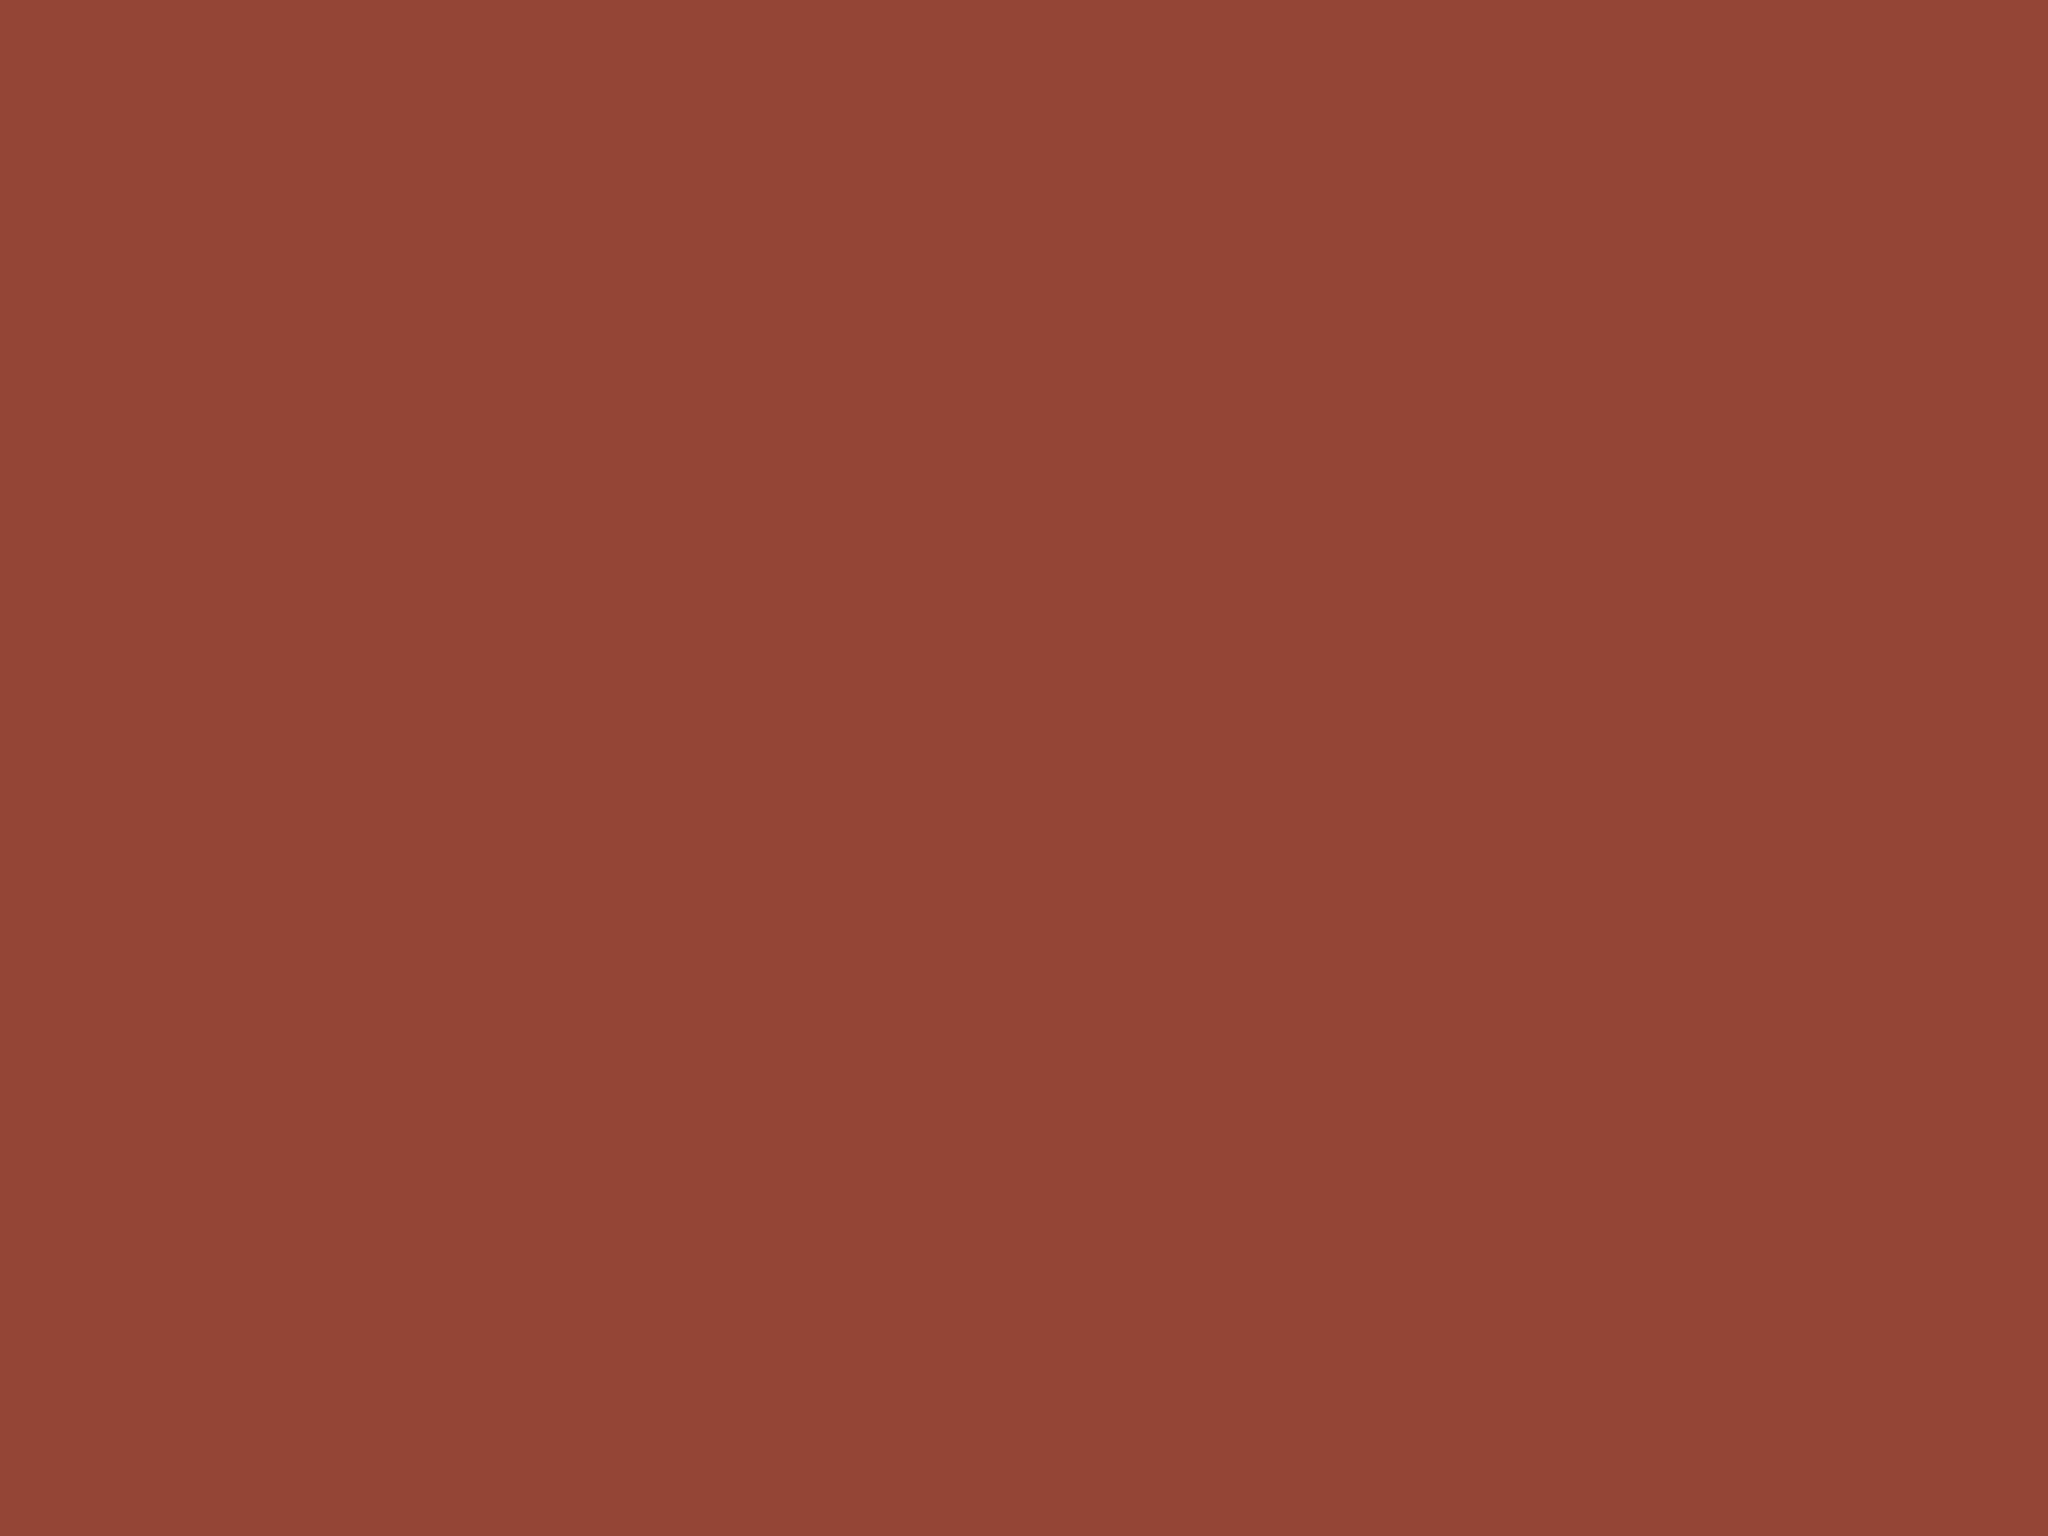 2048x1536 Chestnut Solid Color Background